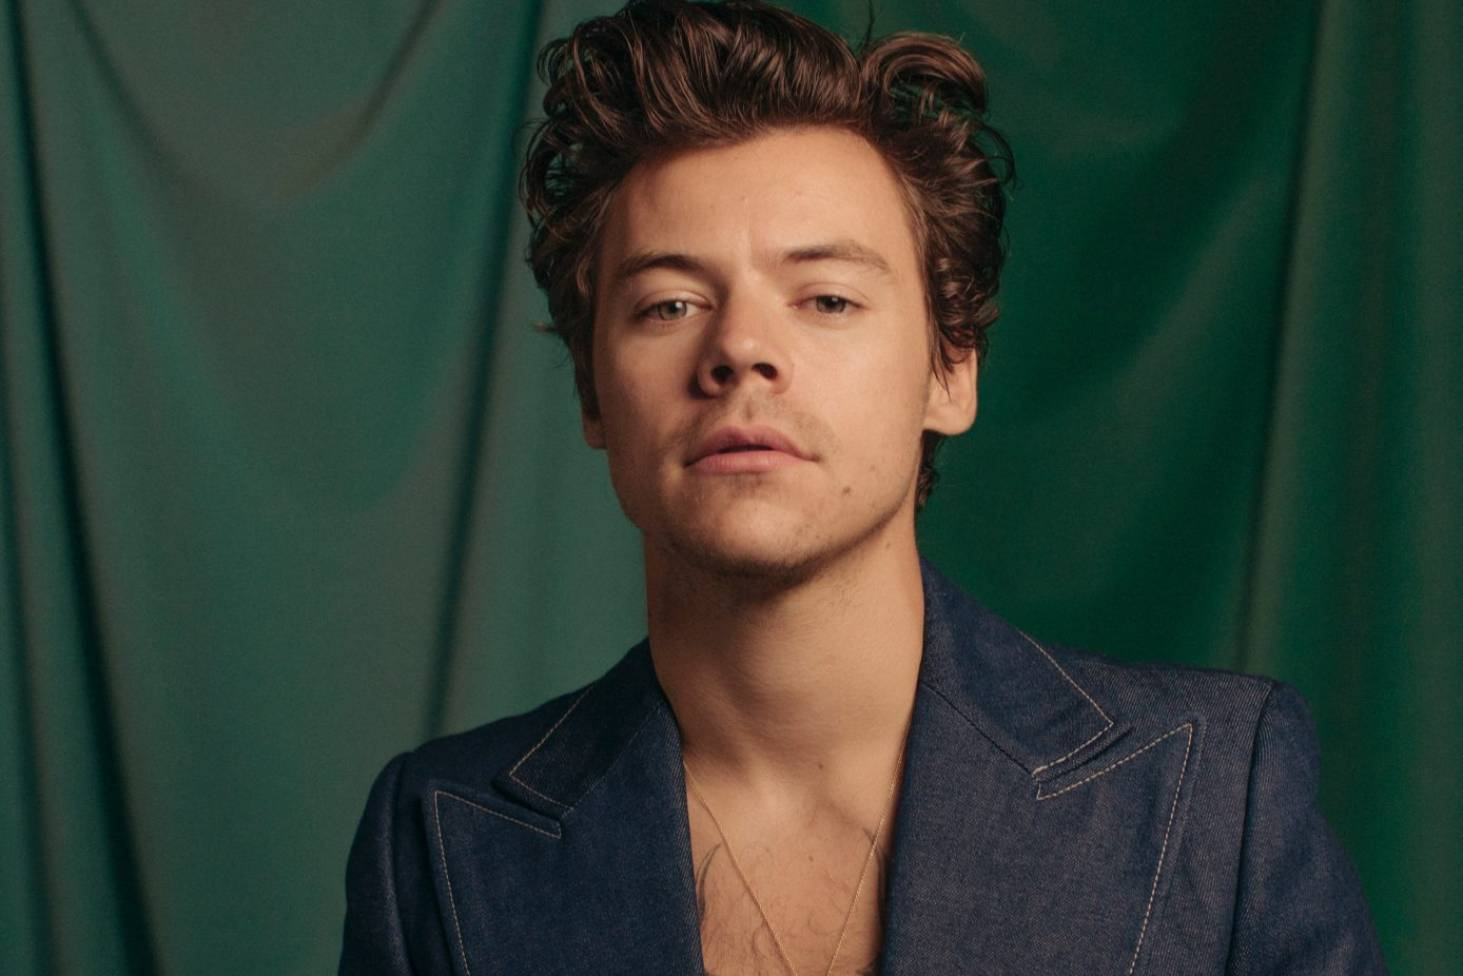 The liberation of Harry Styles | Stuff.co.nz